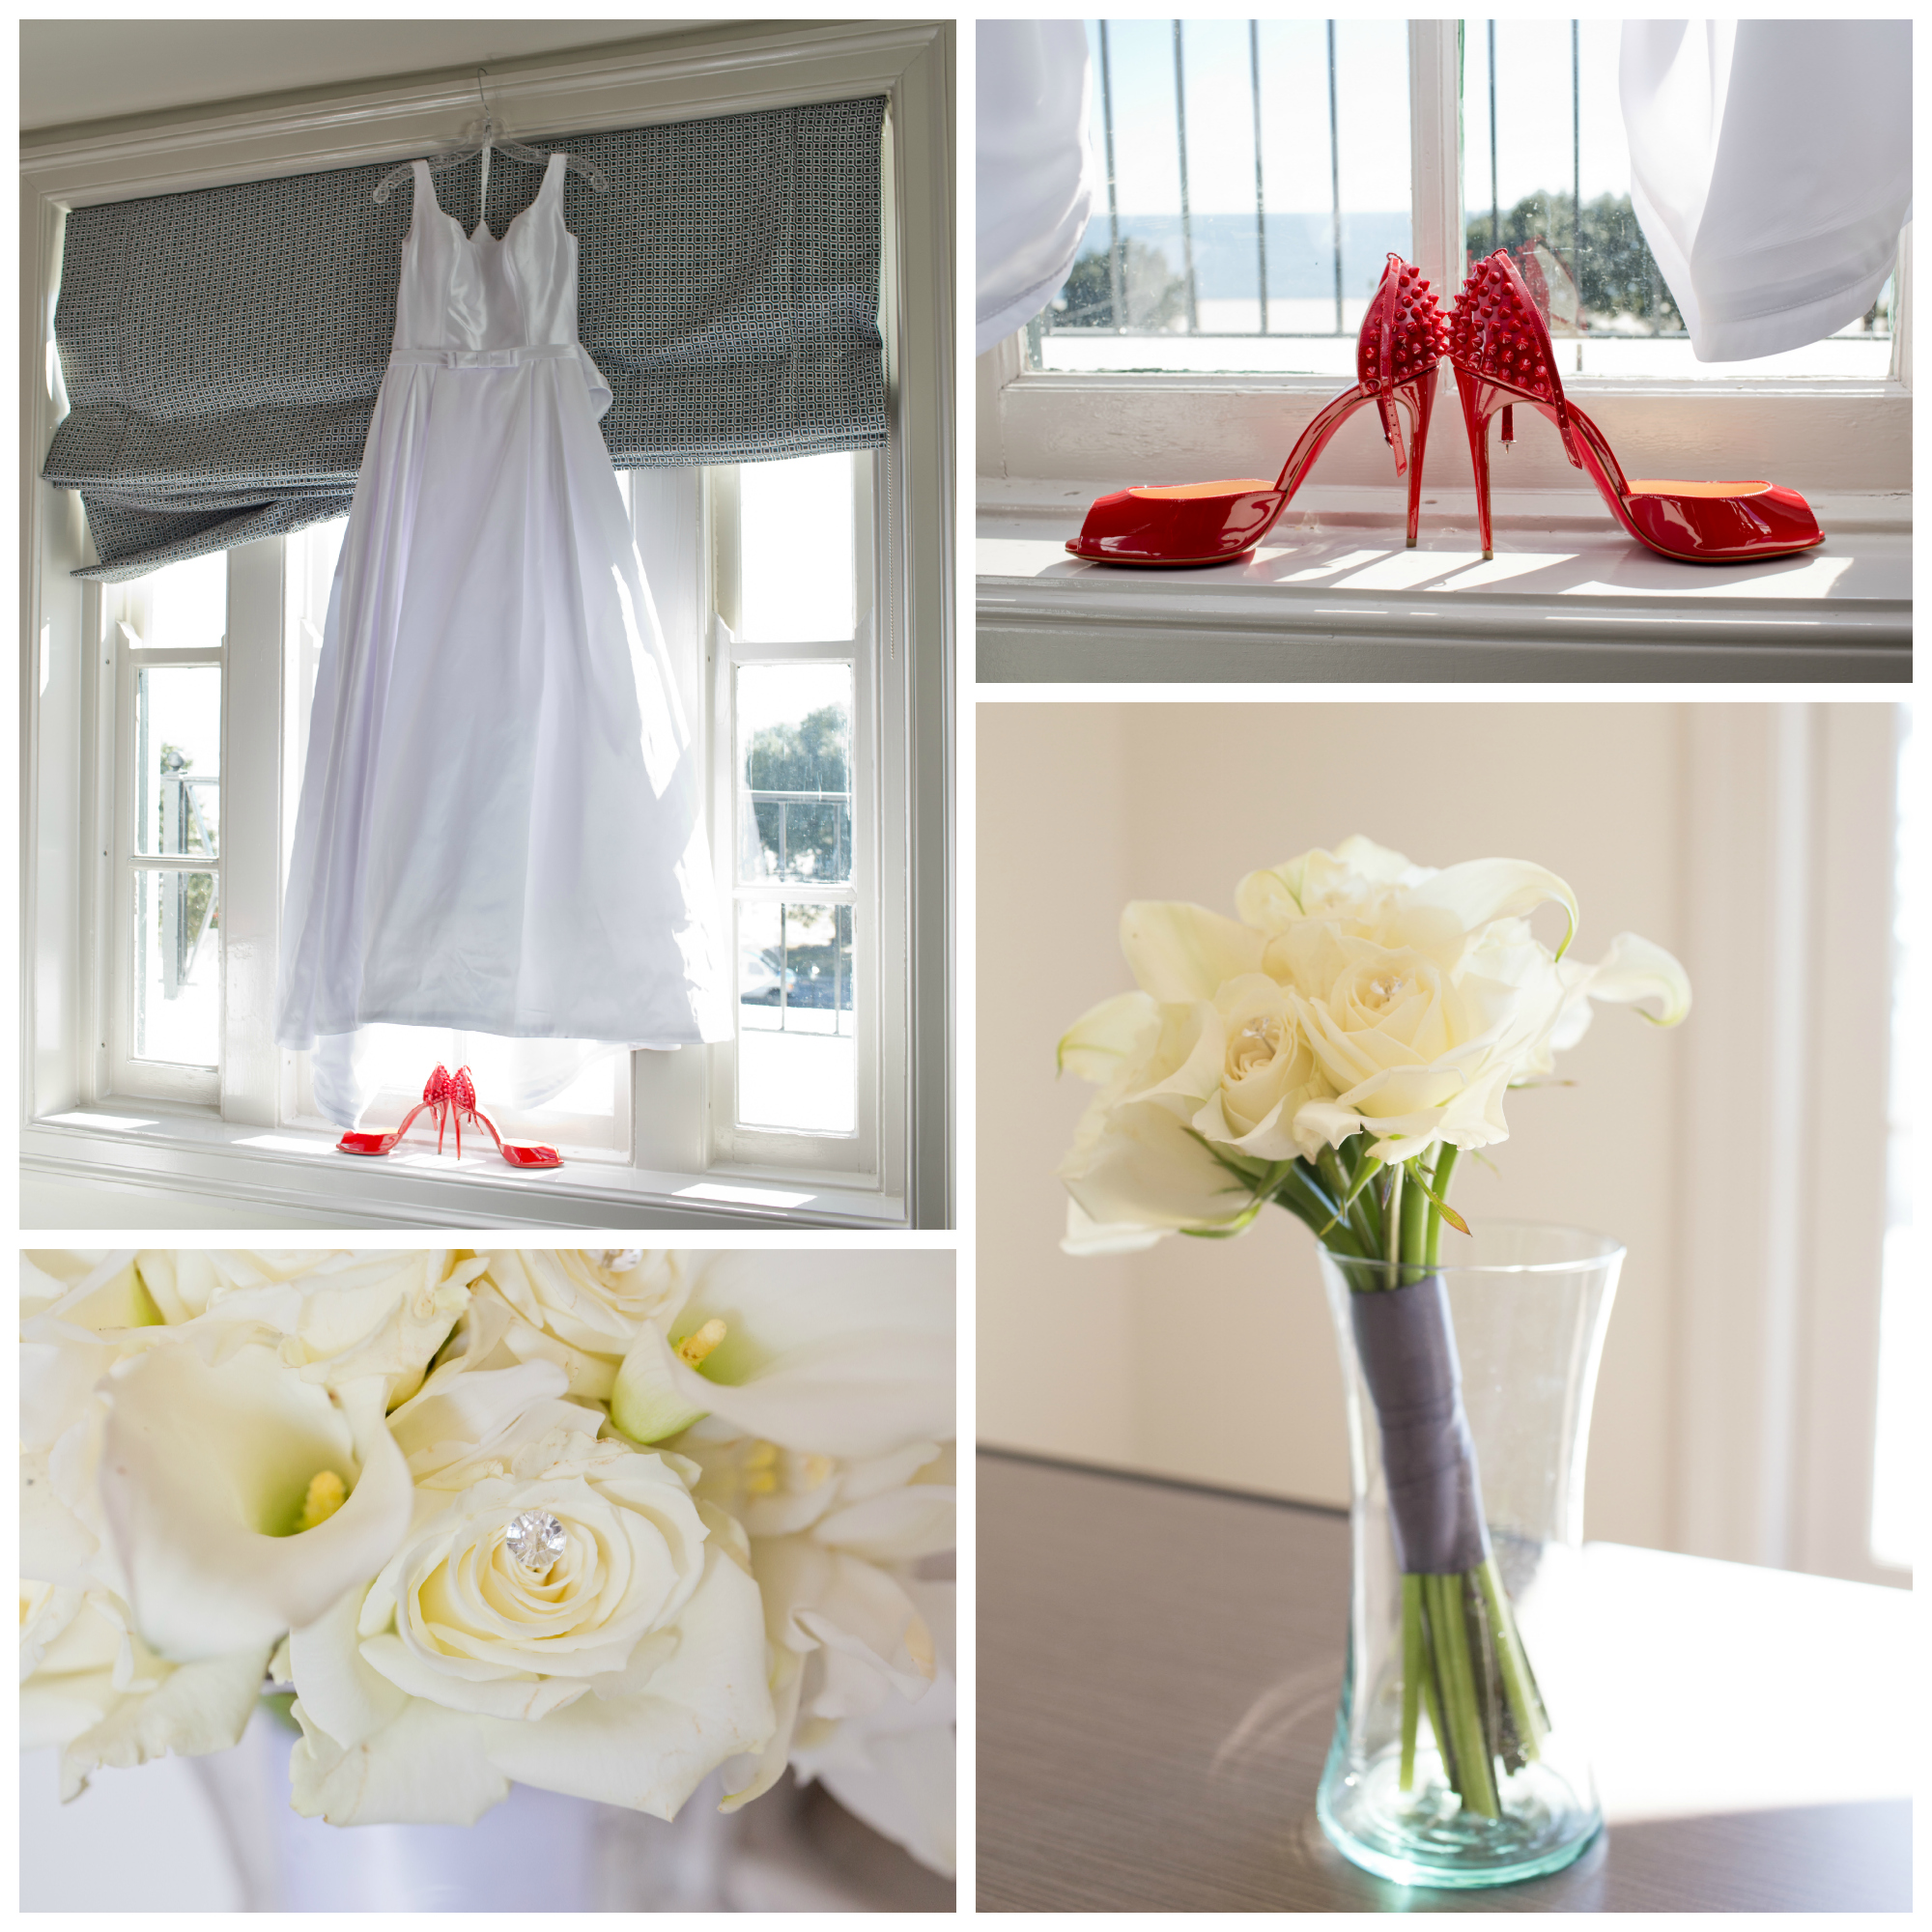 wedding details - bouquets and shoes by Uninvented Colors Photography (Gulf Coast wedding photographer)